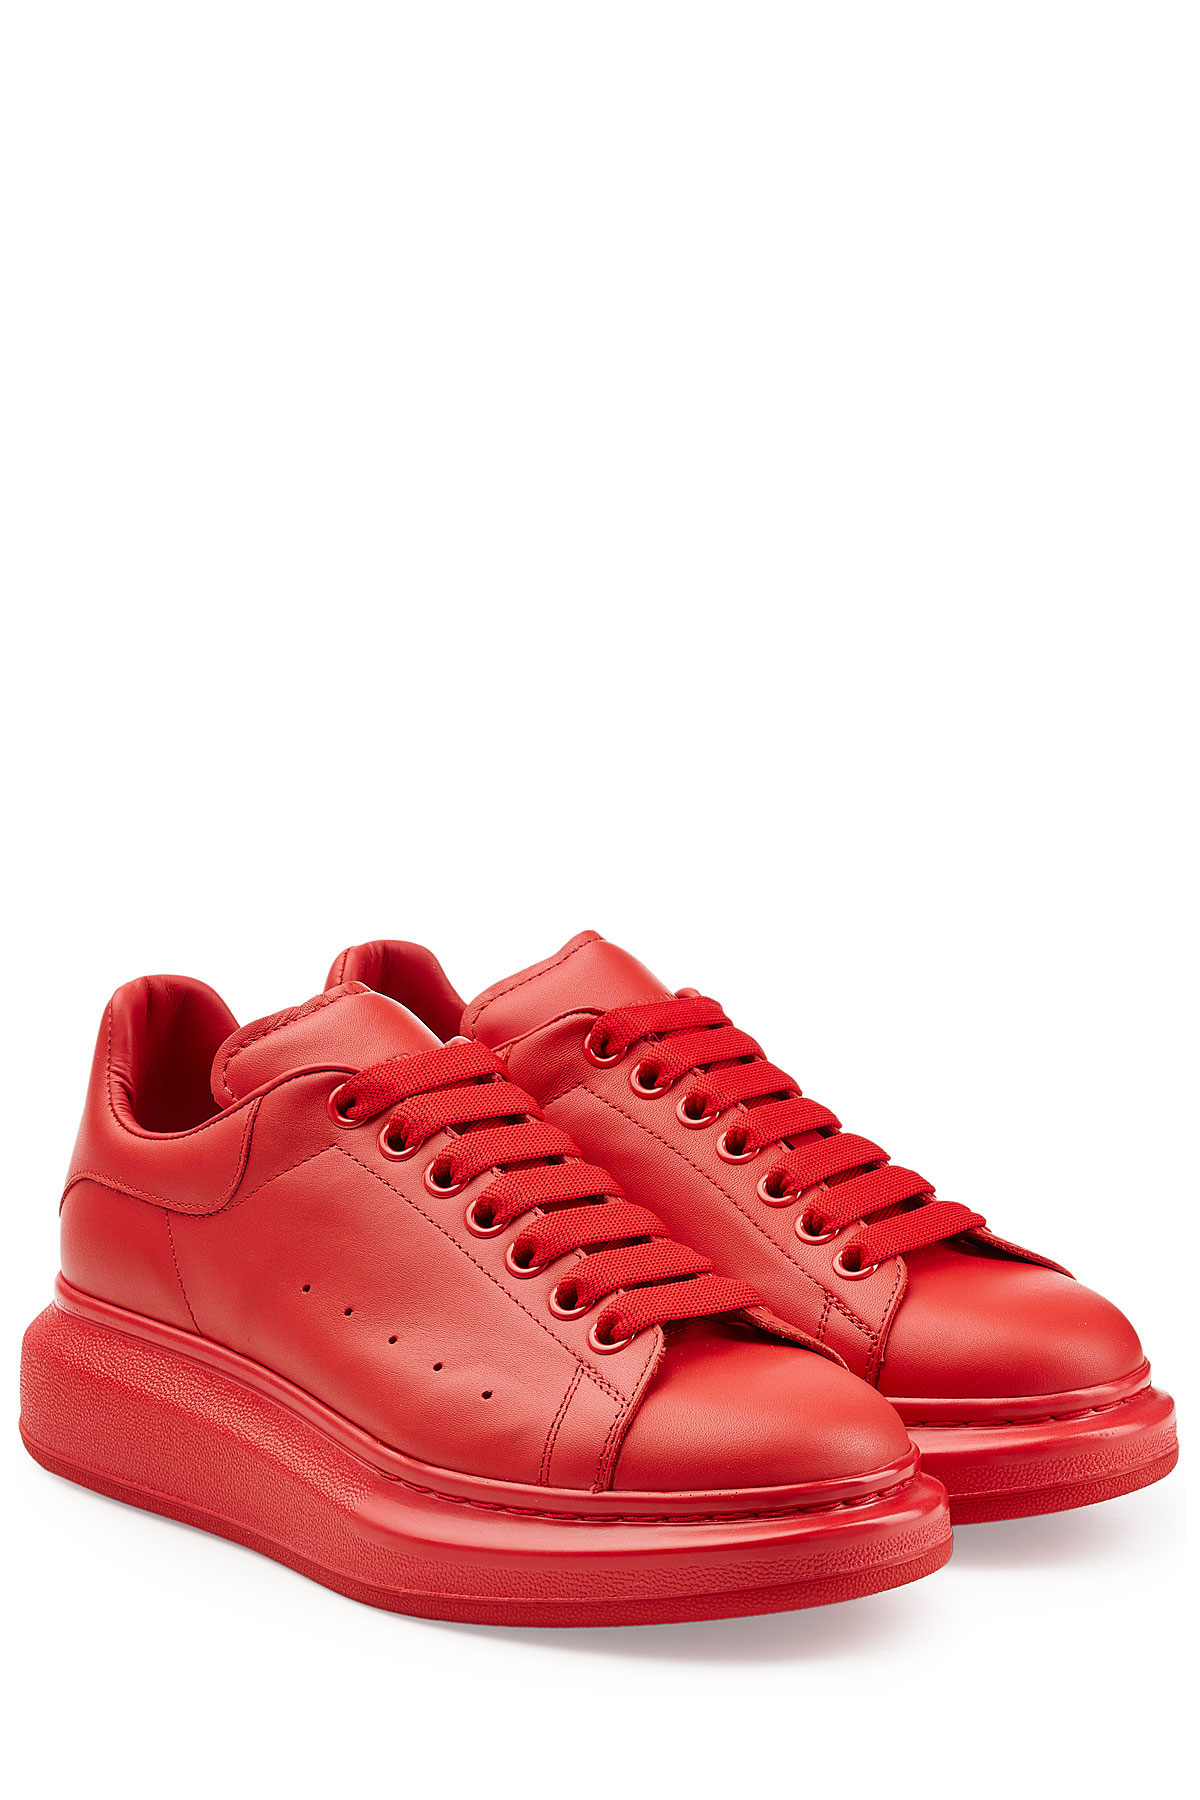 alexander mcqueen leather sneakers red in red for men lyst. Black Bedroom Furniture Sets. Home Design Ideas